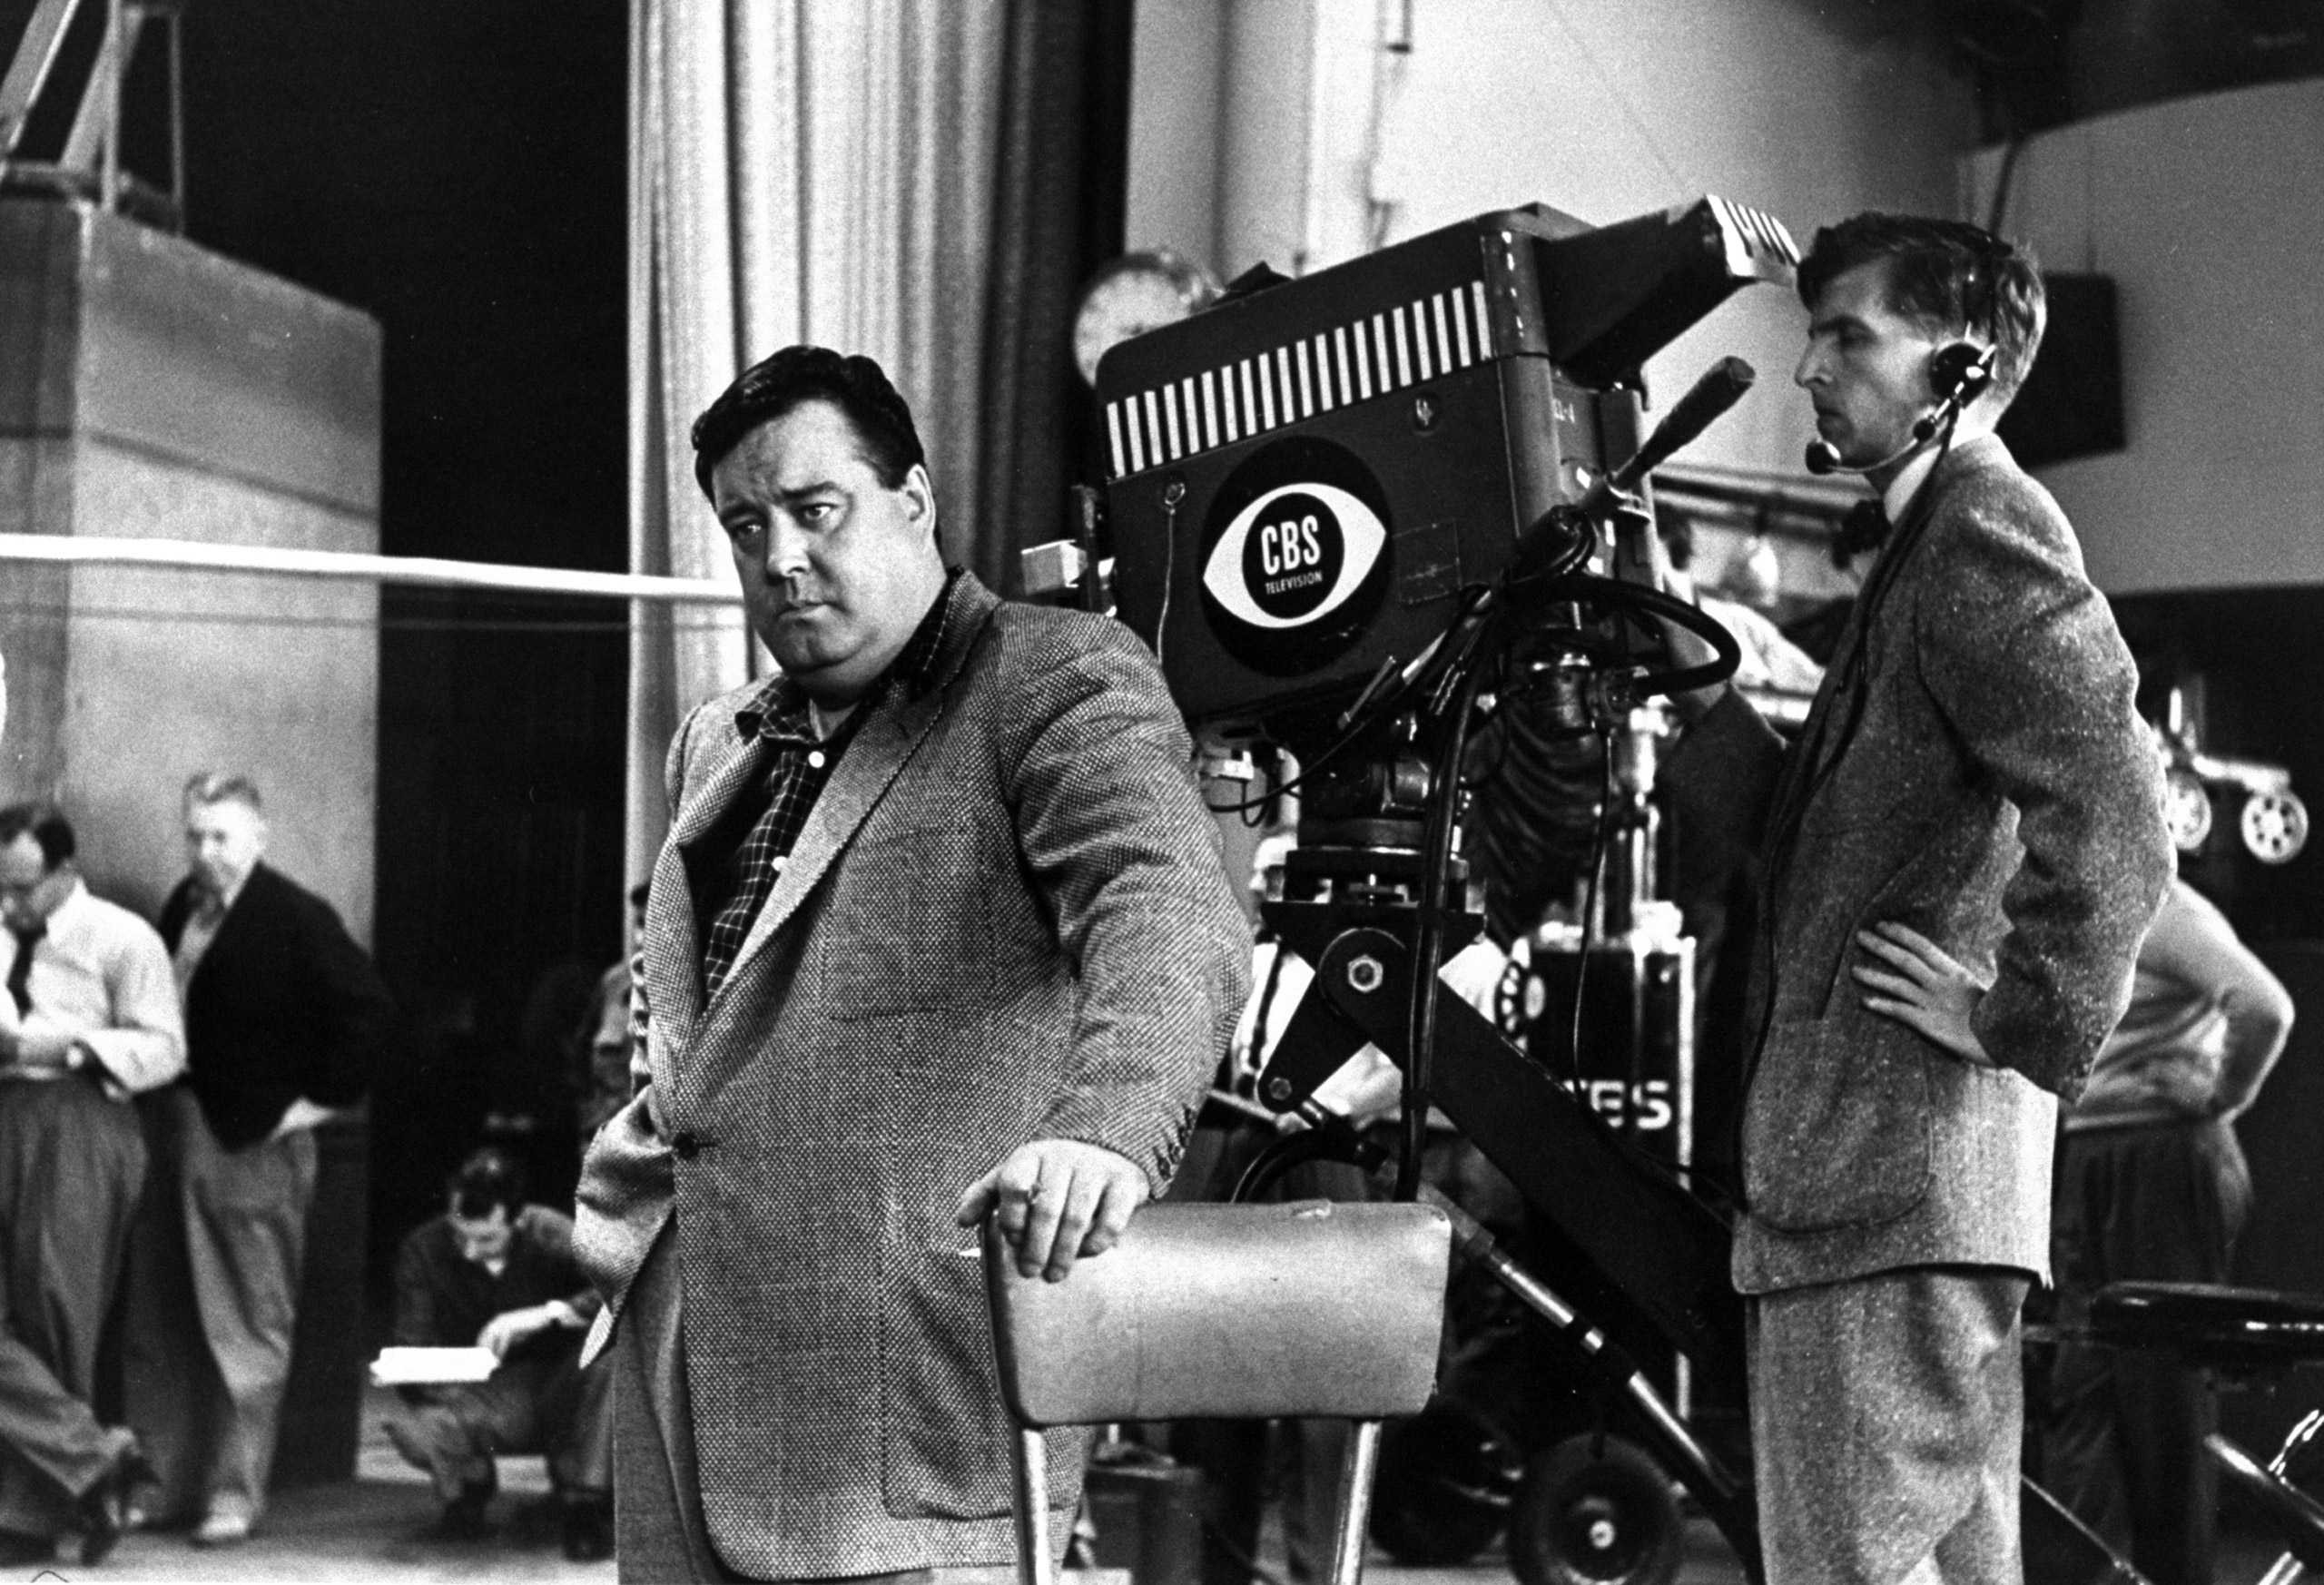 Jackie Gleason on the set of The Honeymooners.